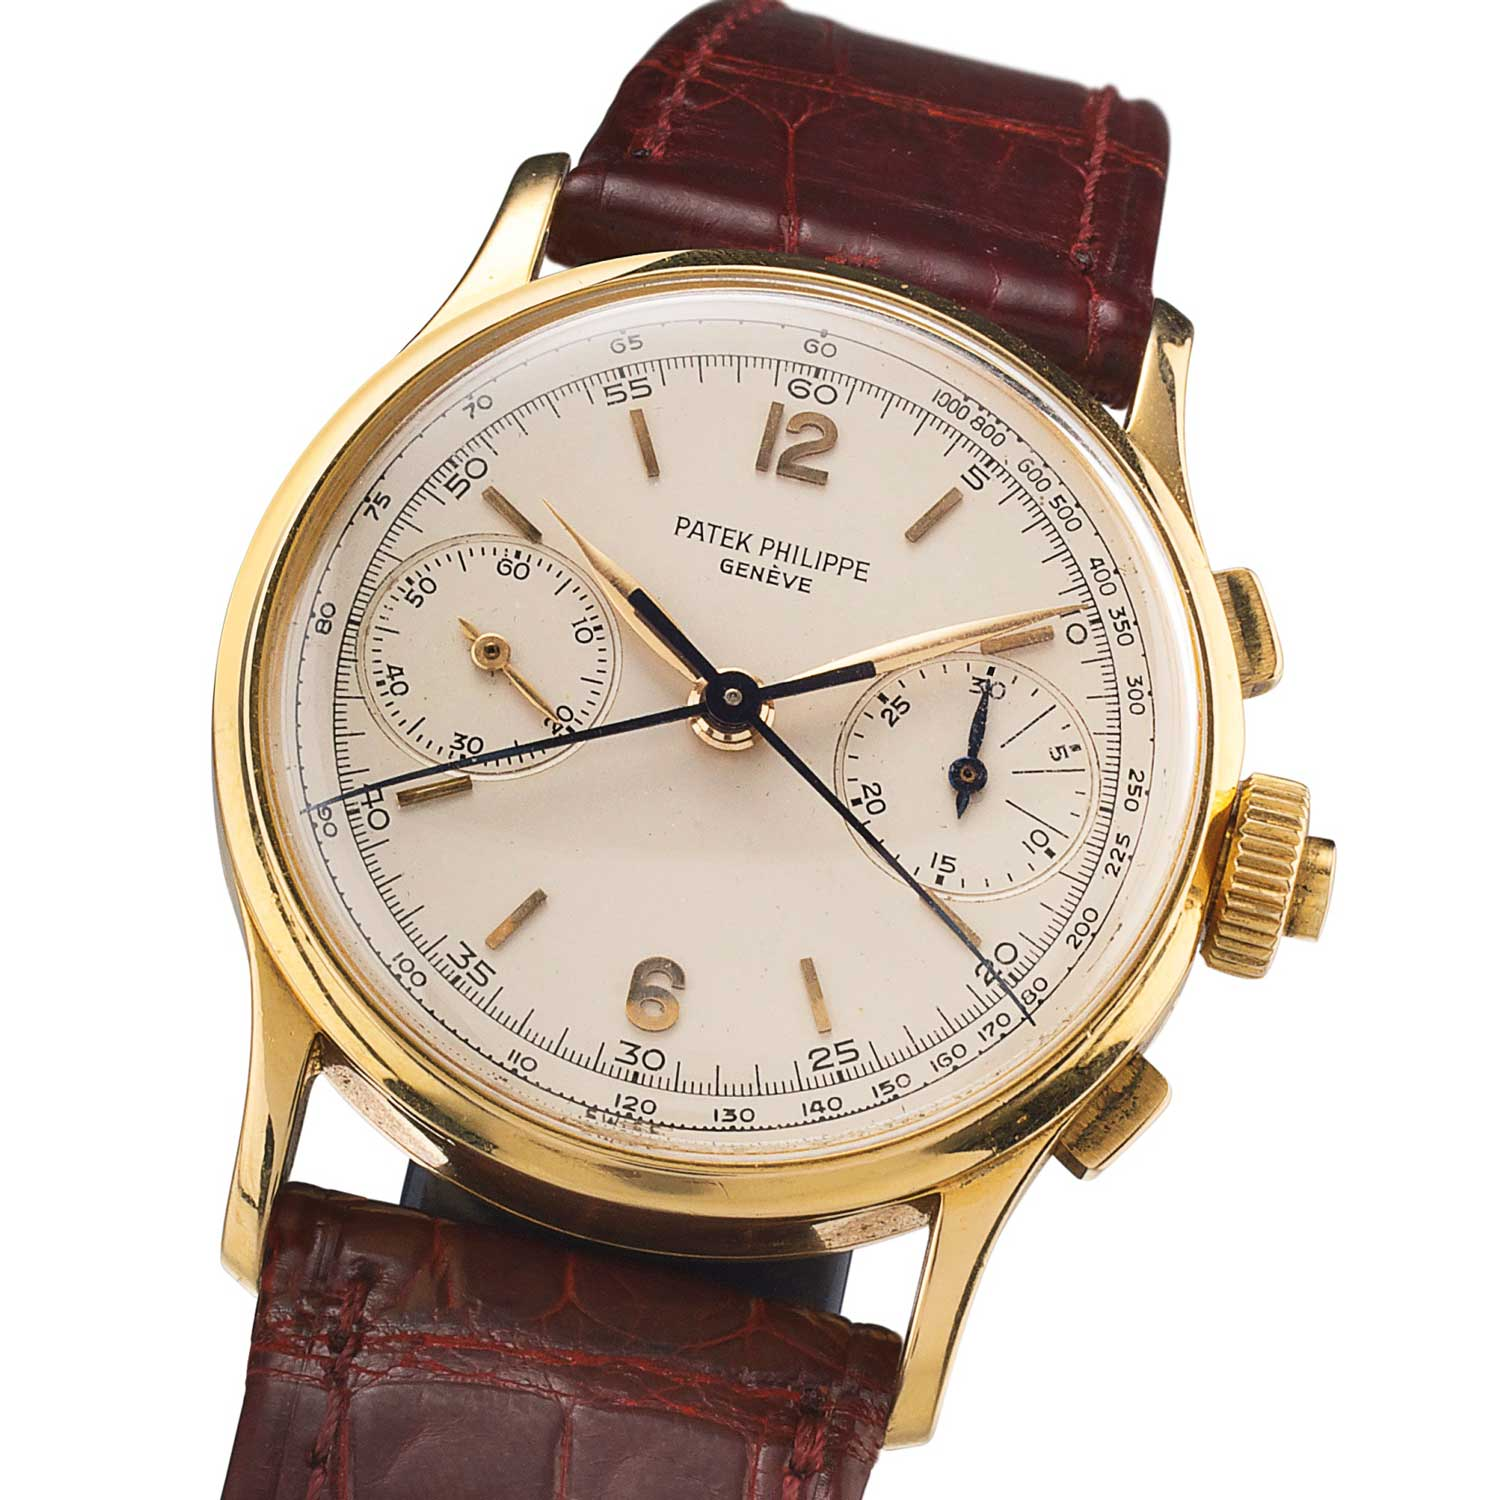 1966 Patek Philippe ref. 1436 yellow gold split second chronograph with silvered dial, applied Arabic numerals and baton indexes, feuille hands (Sothebys.com)